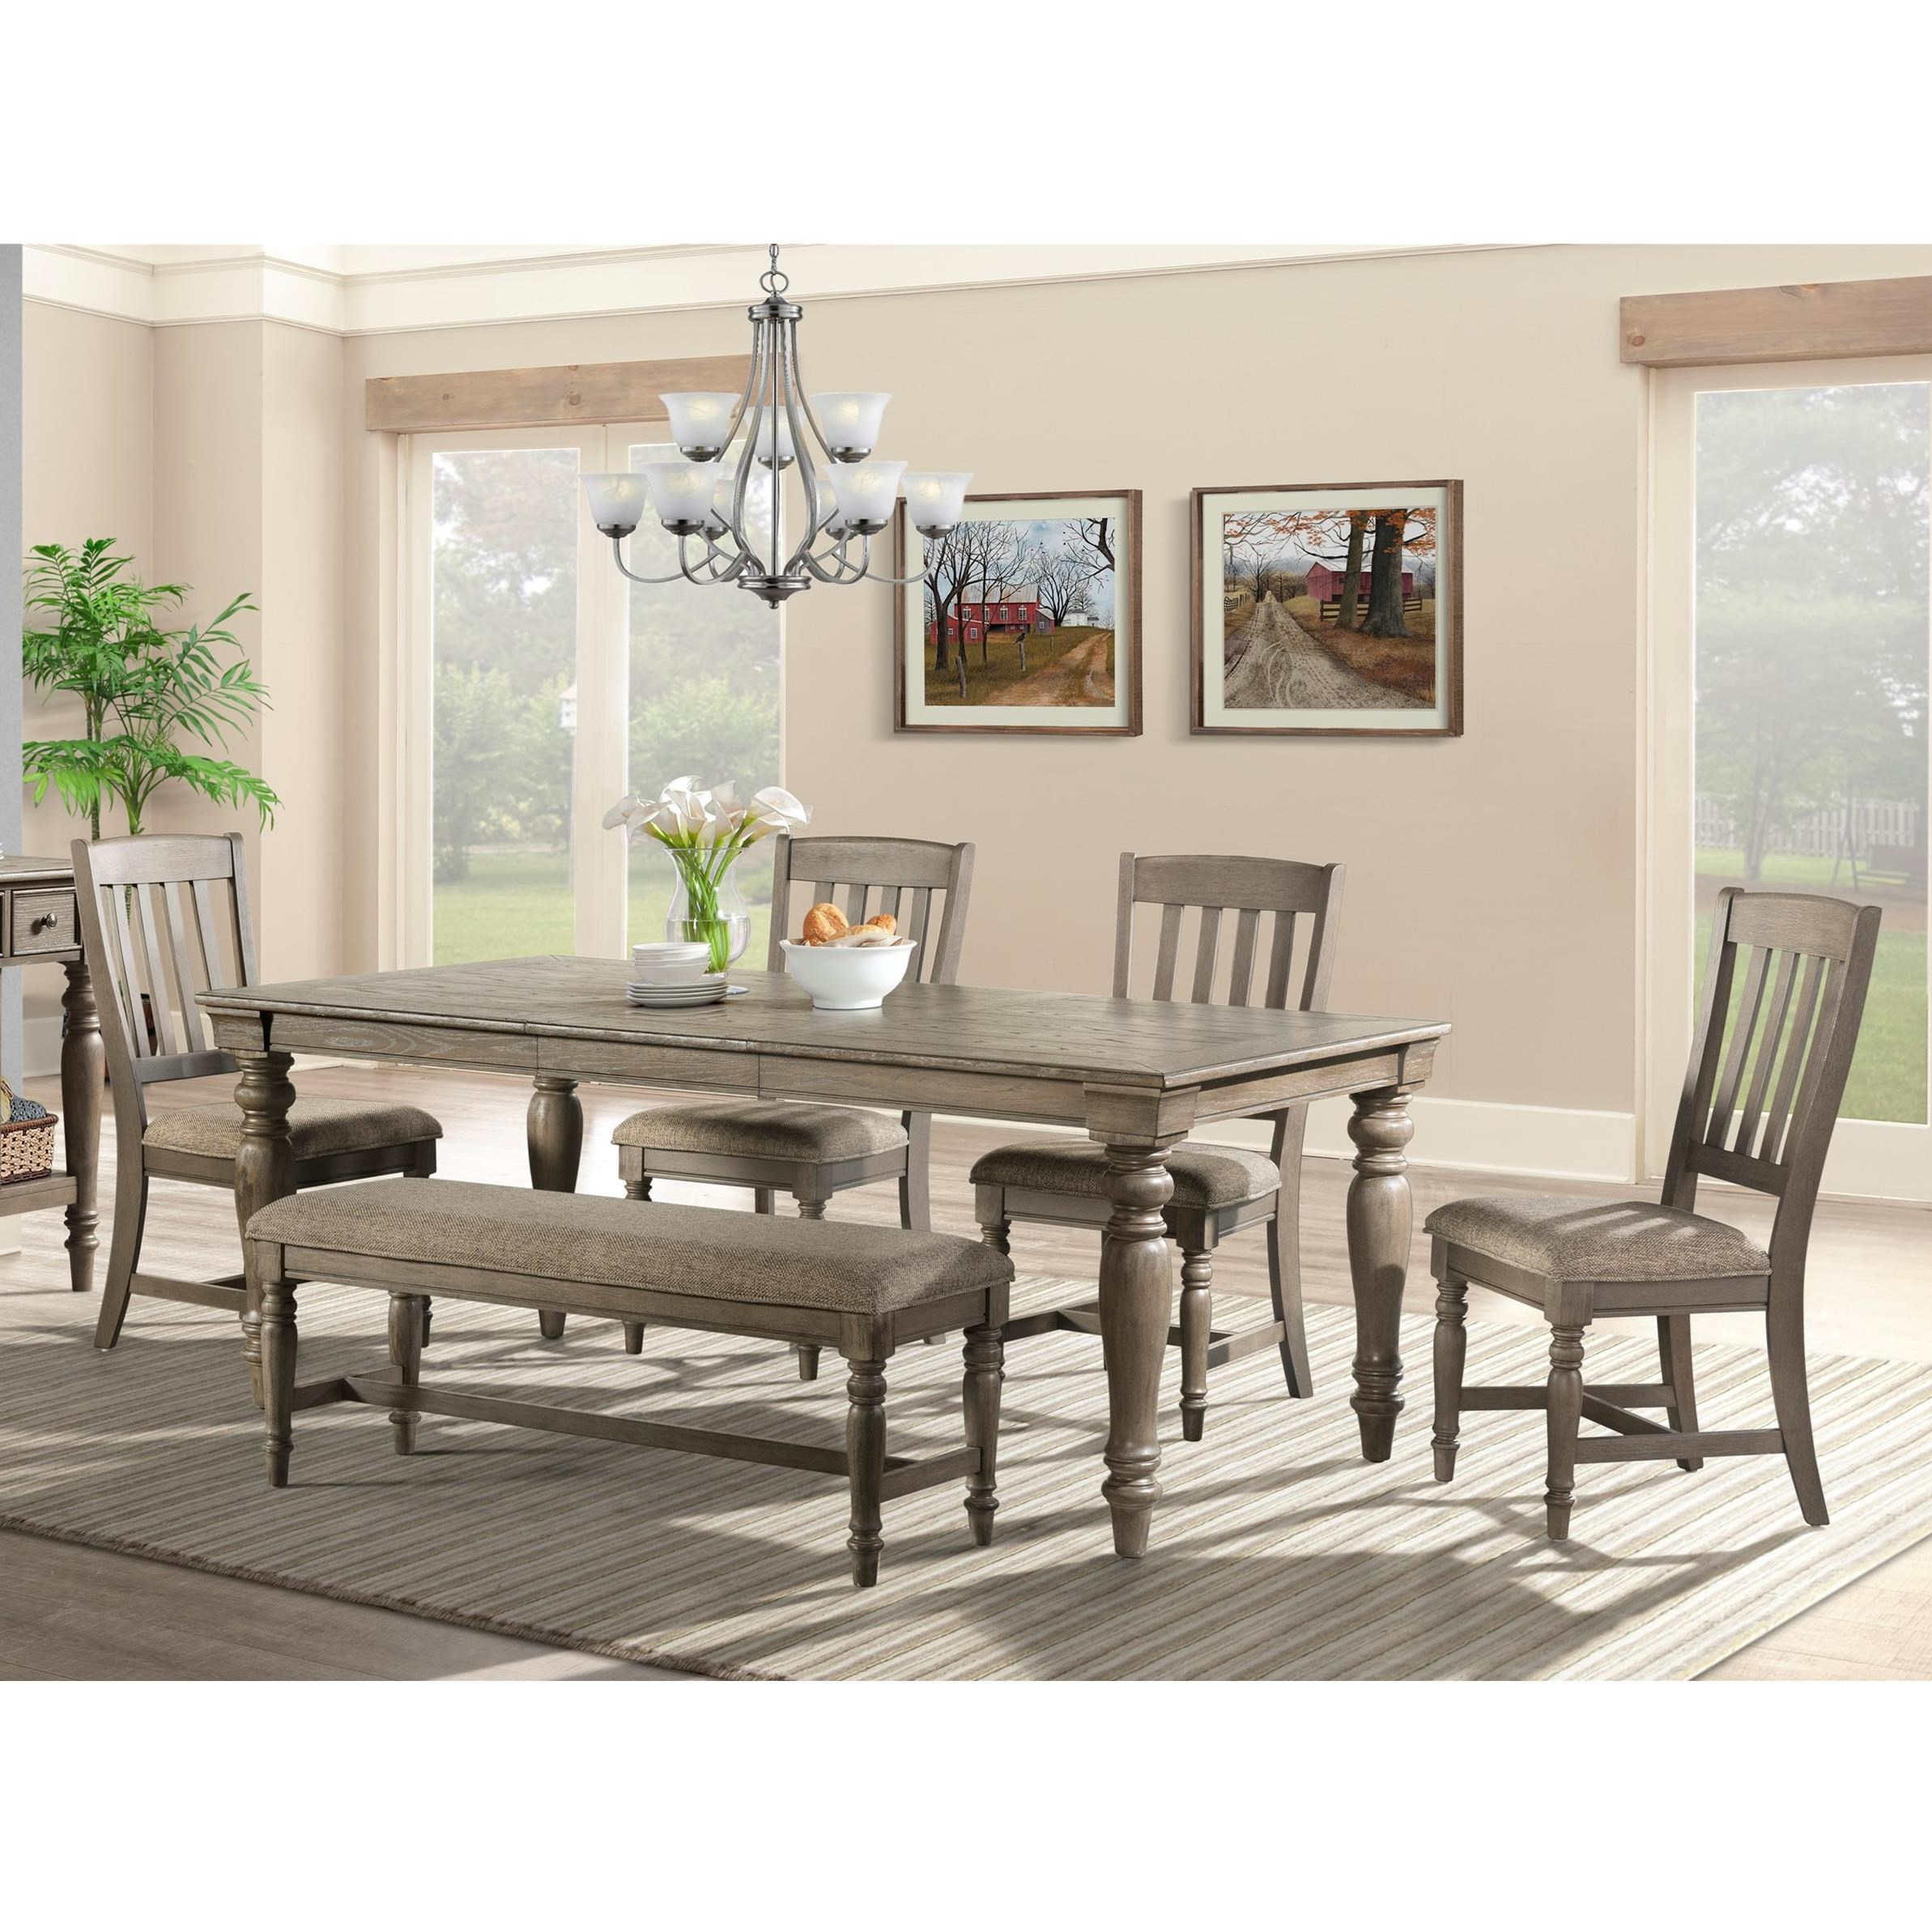 Table and Chair Set with Bench at Sadler's Home Furnishings